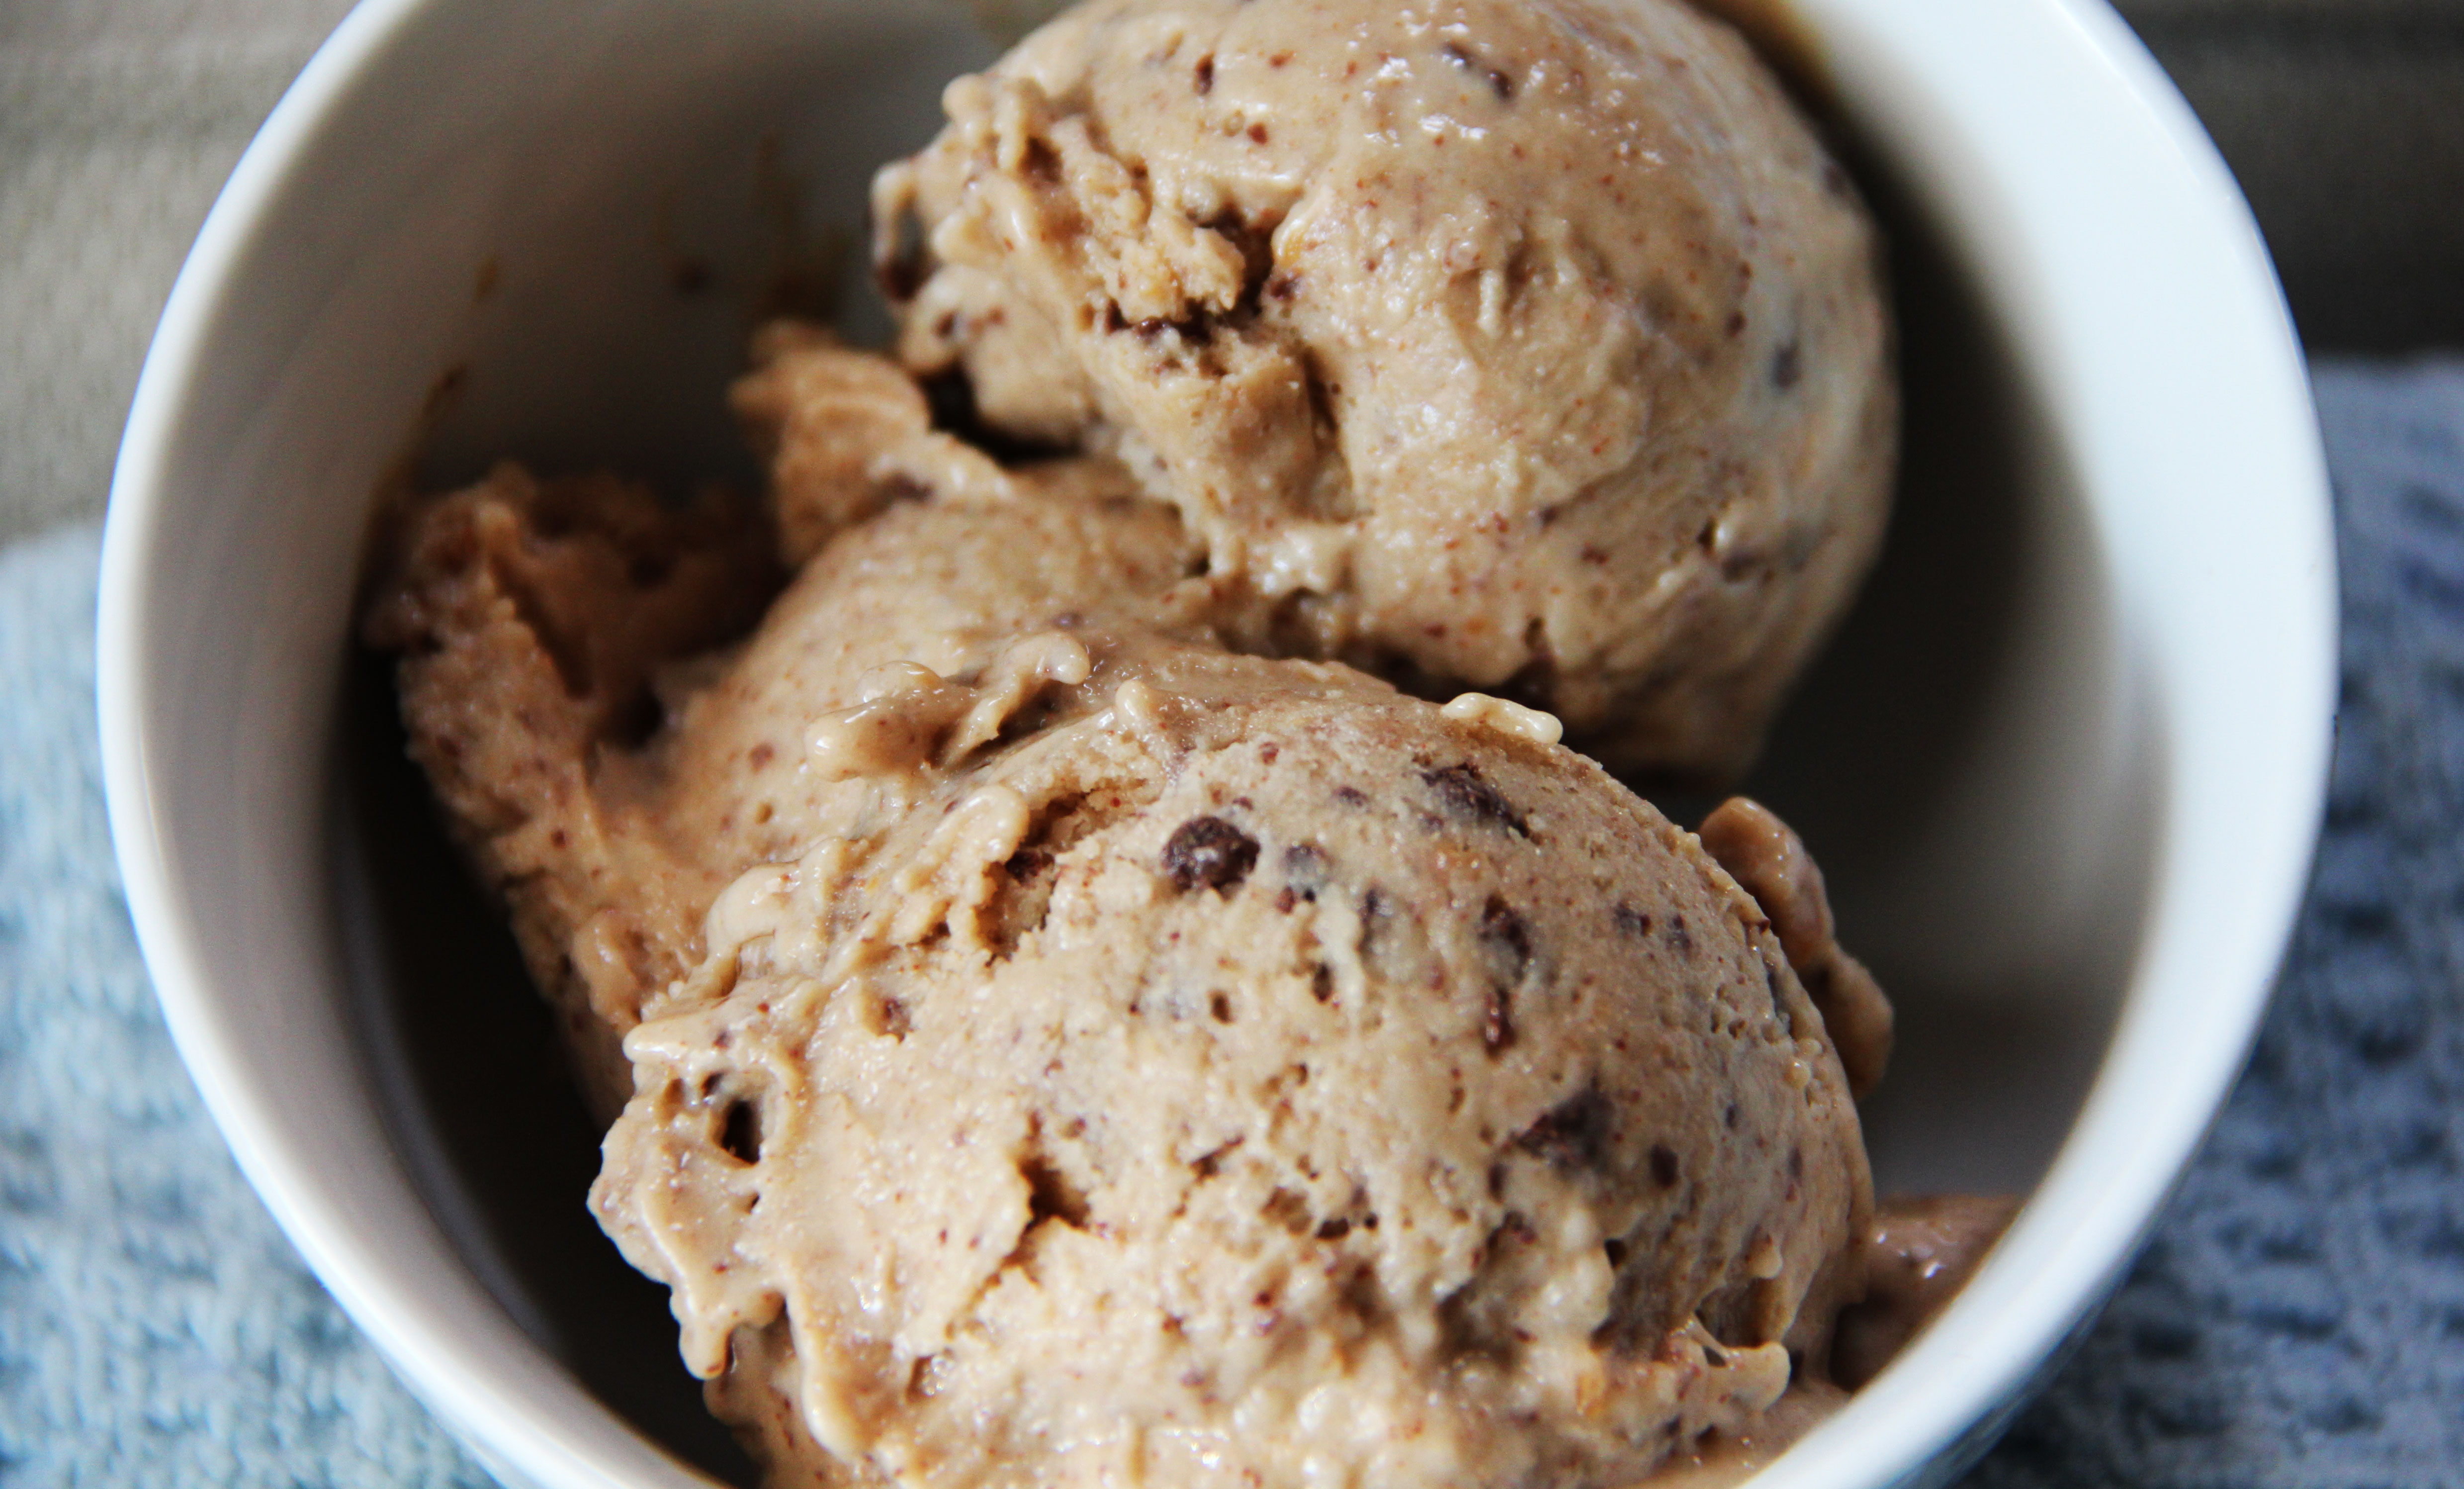 cream chocolate banana ice cream healthy ice cream chocolate banana ...